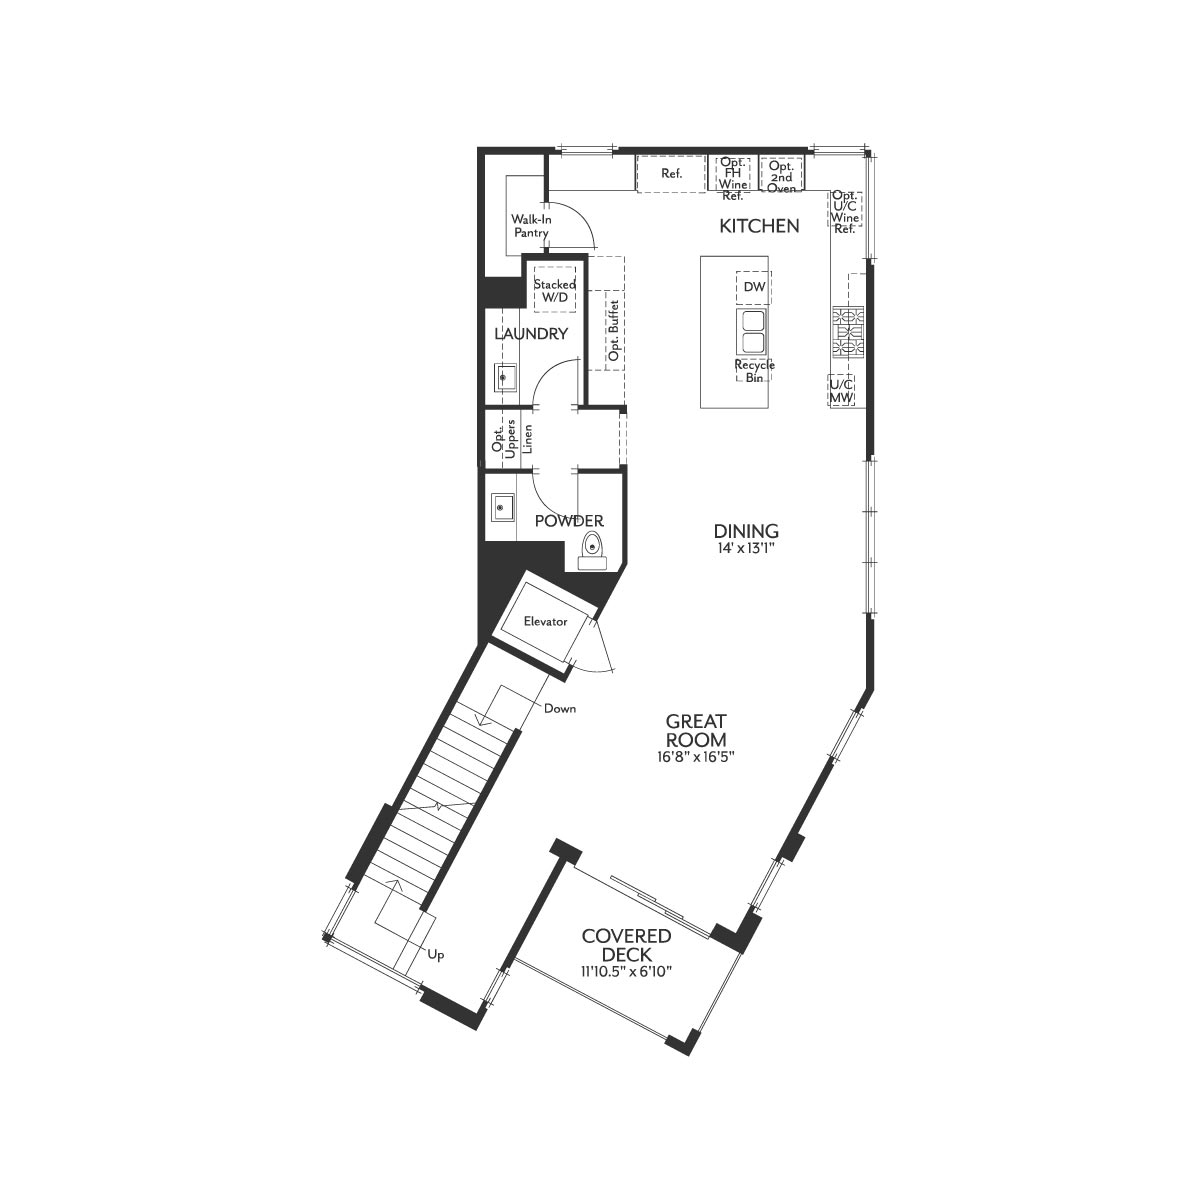 Residence 1 Floor 2 Floor Plan | The Collection at Playa Vista in Los Angeles, CA | Brookfield Residential